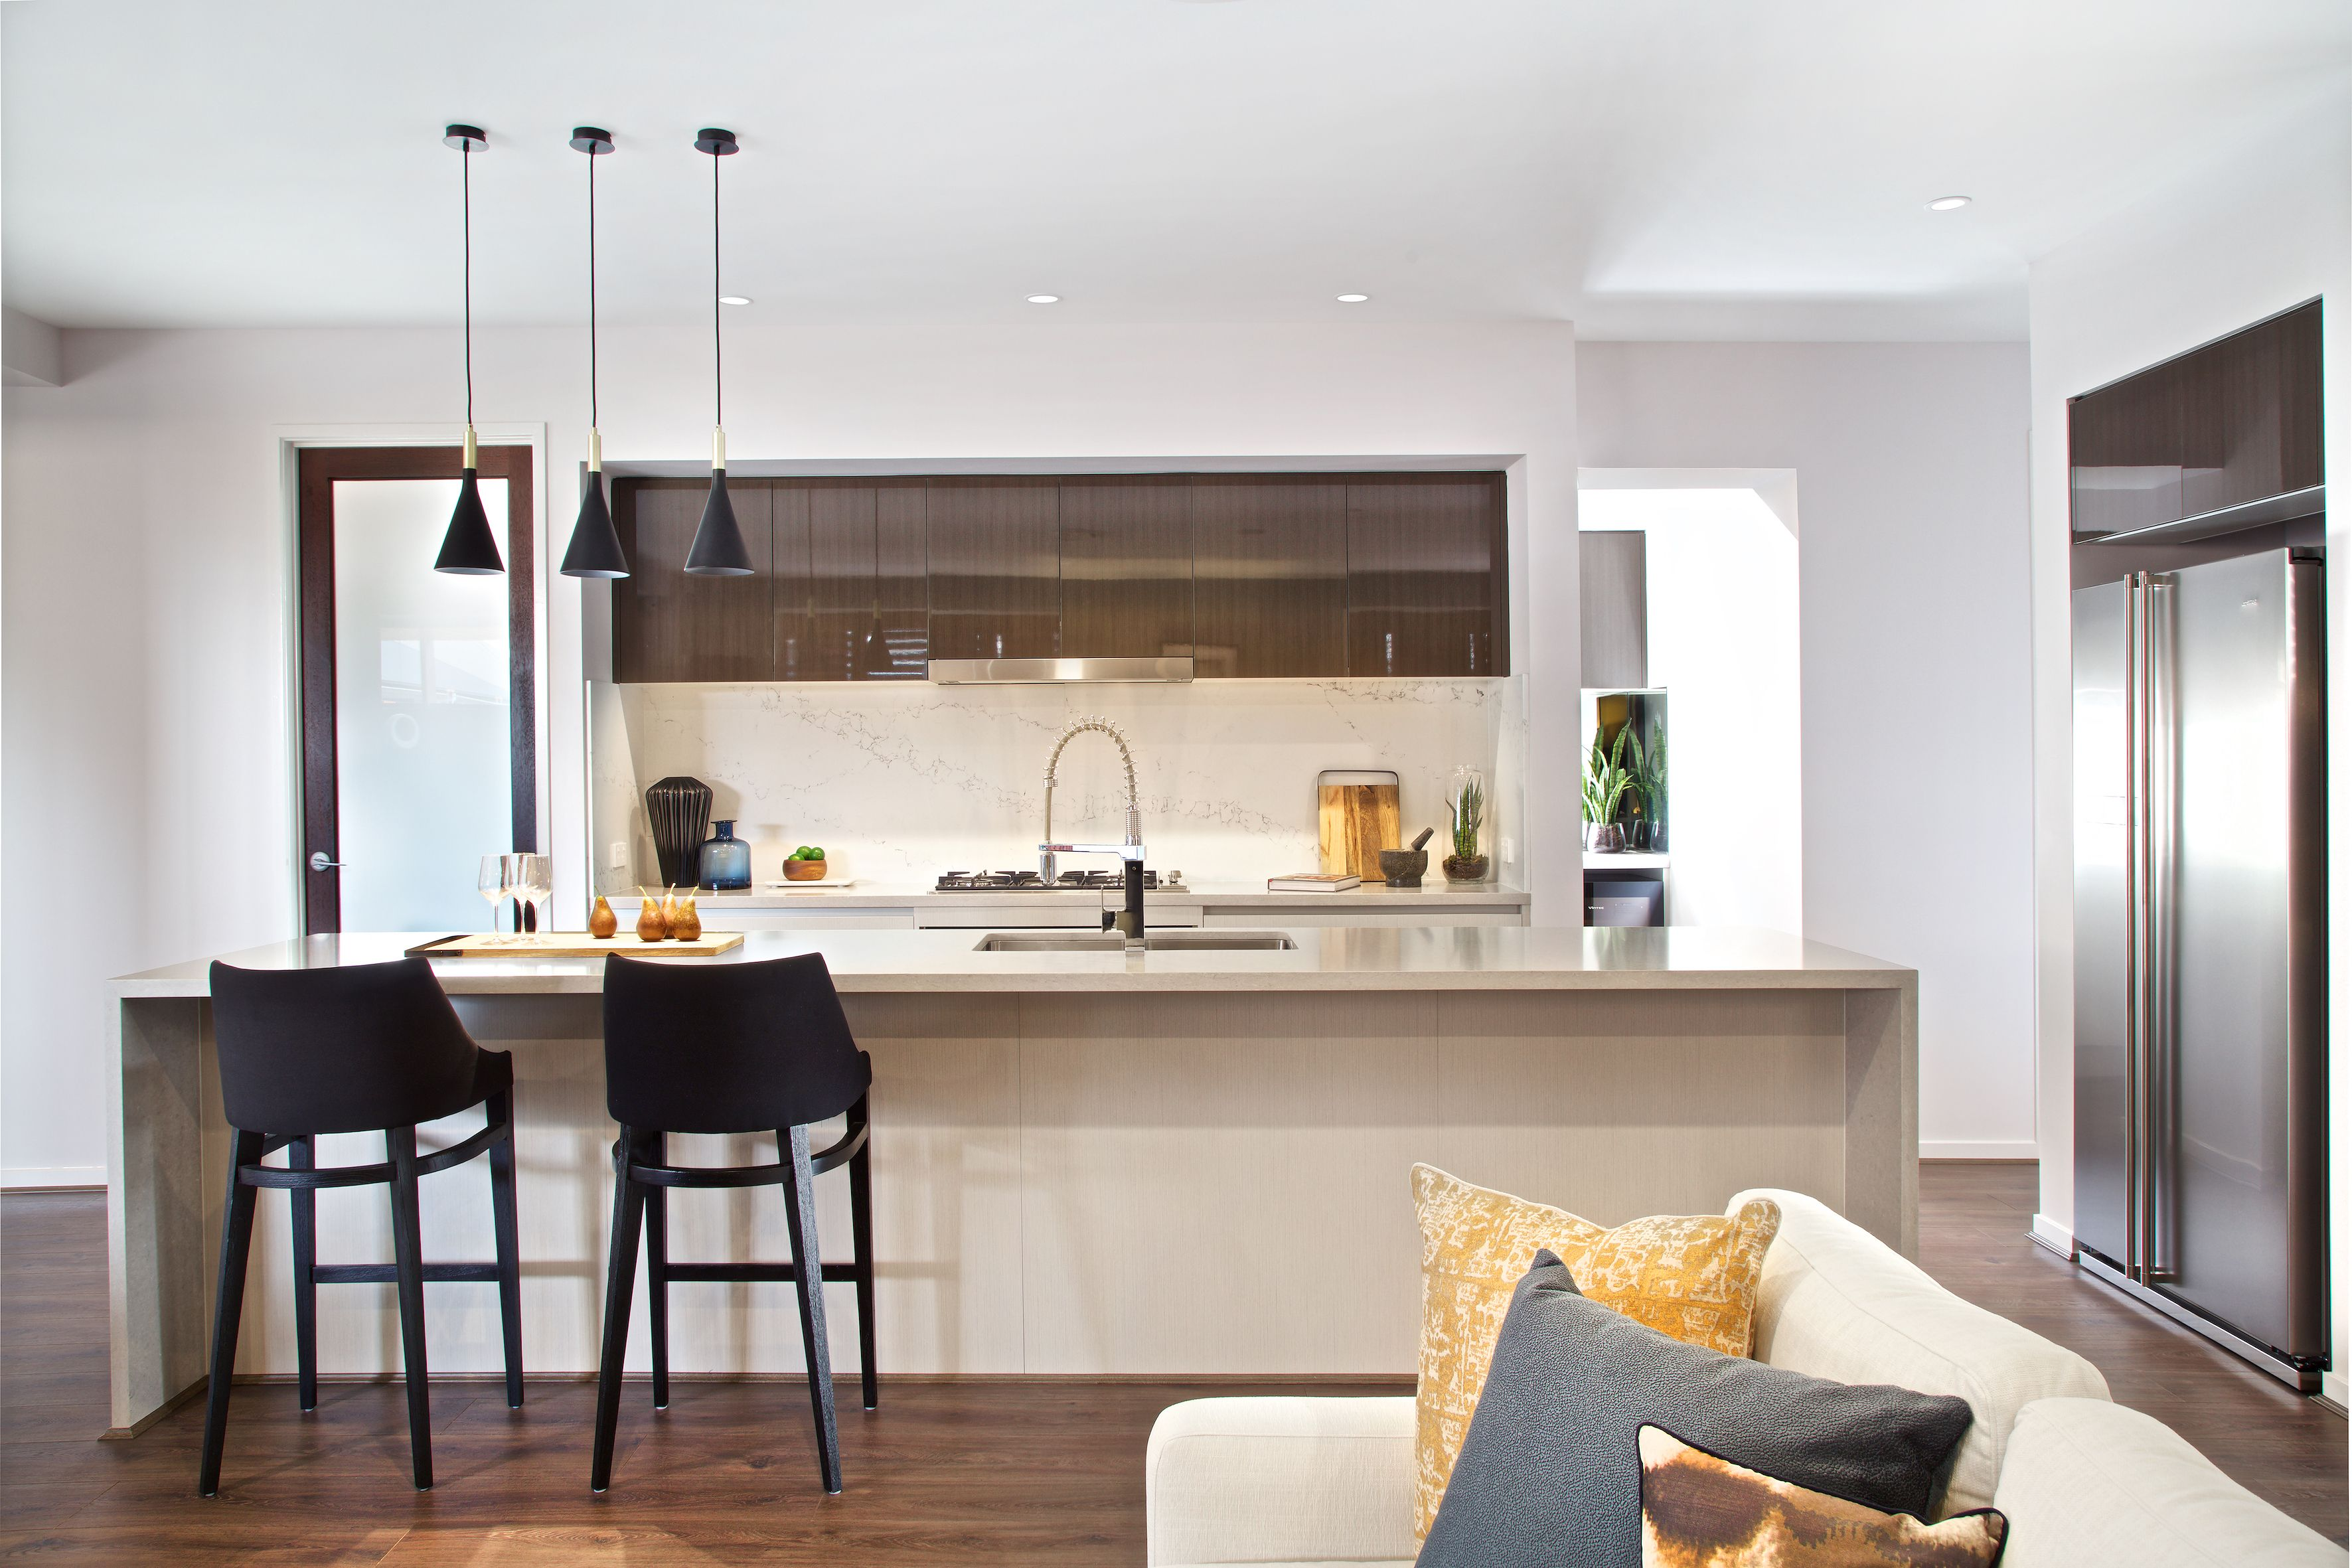 Armadale 41 | Kitchens, Display and House